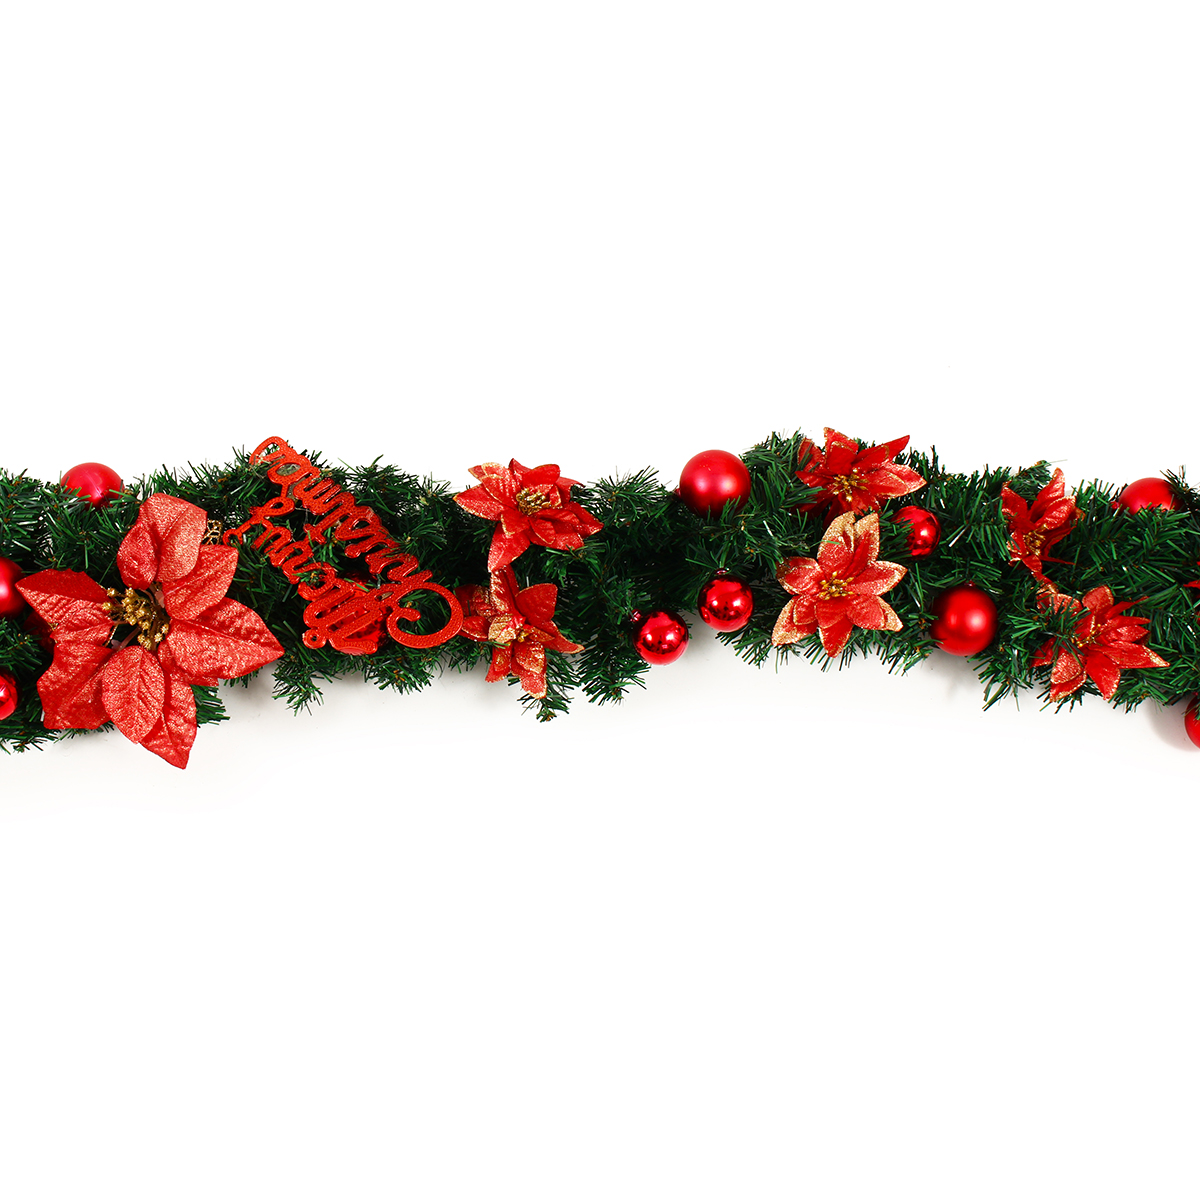 2.7M Christmas Garland Party Atificial Rattan Bow Home Wall Ornament Decorations